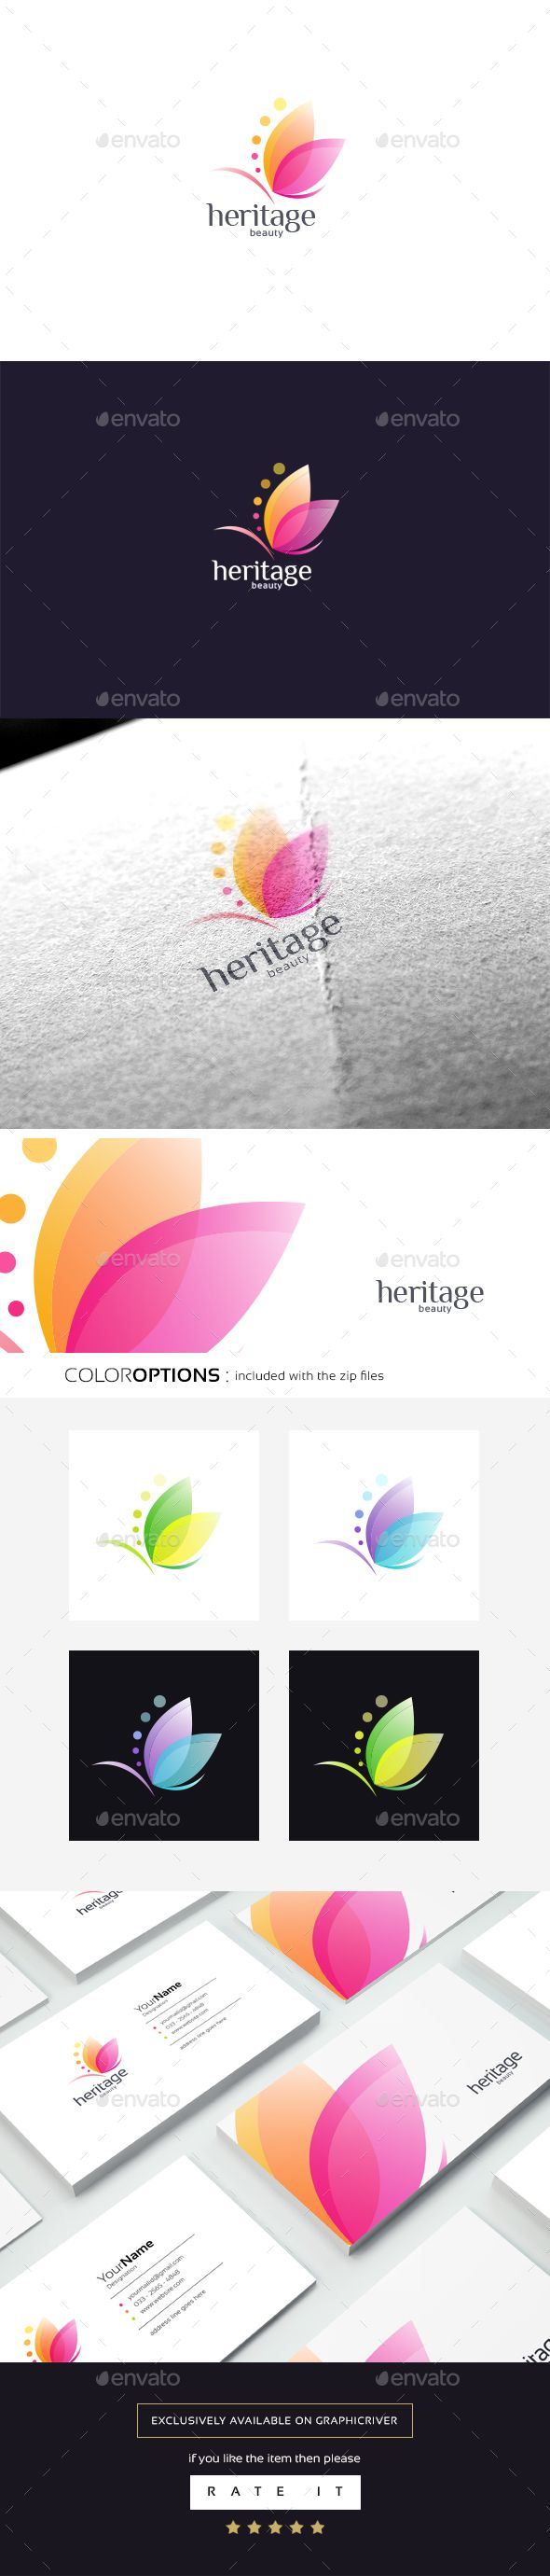 Heritage beauty — Vector EPS #spa #natural • Download ➝ https://graphicriver.net/item/heritage-beauty/19239286?ref=pxcr